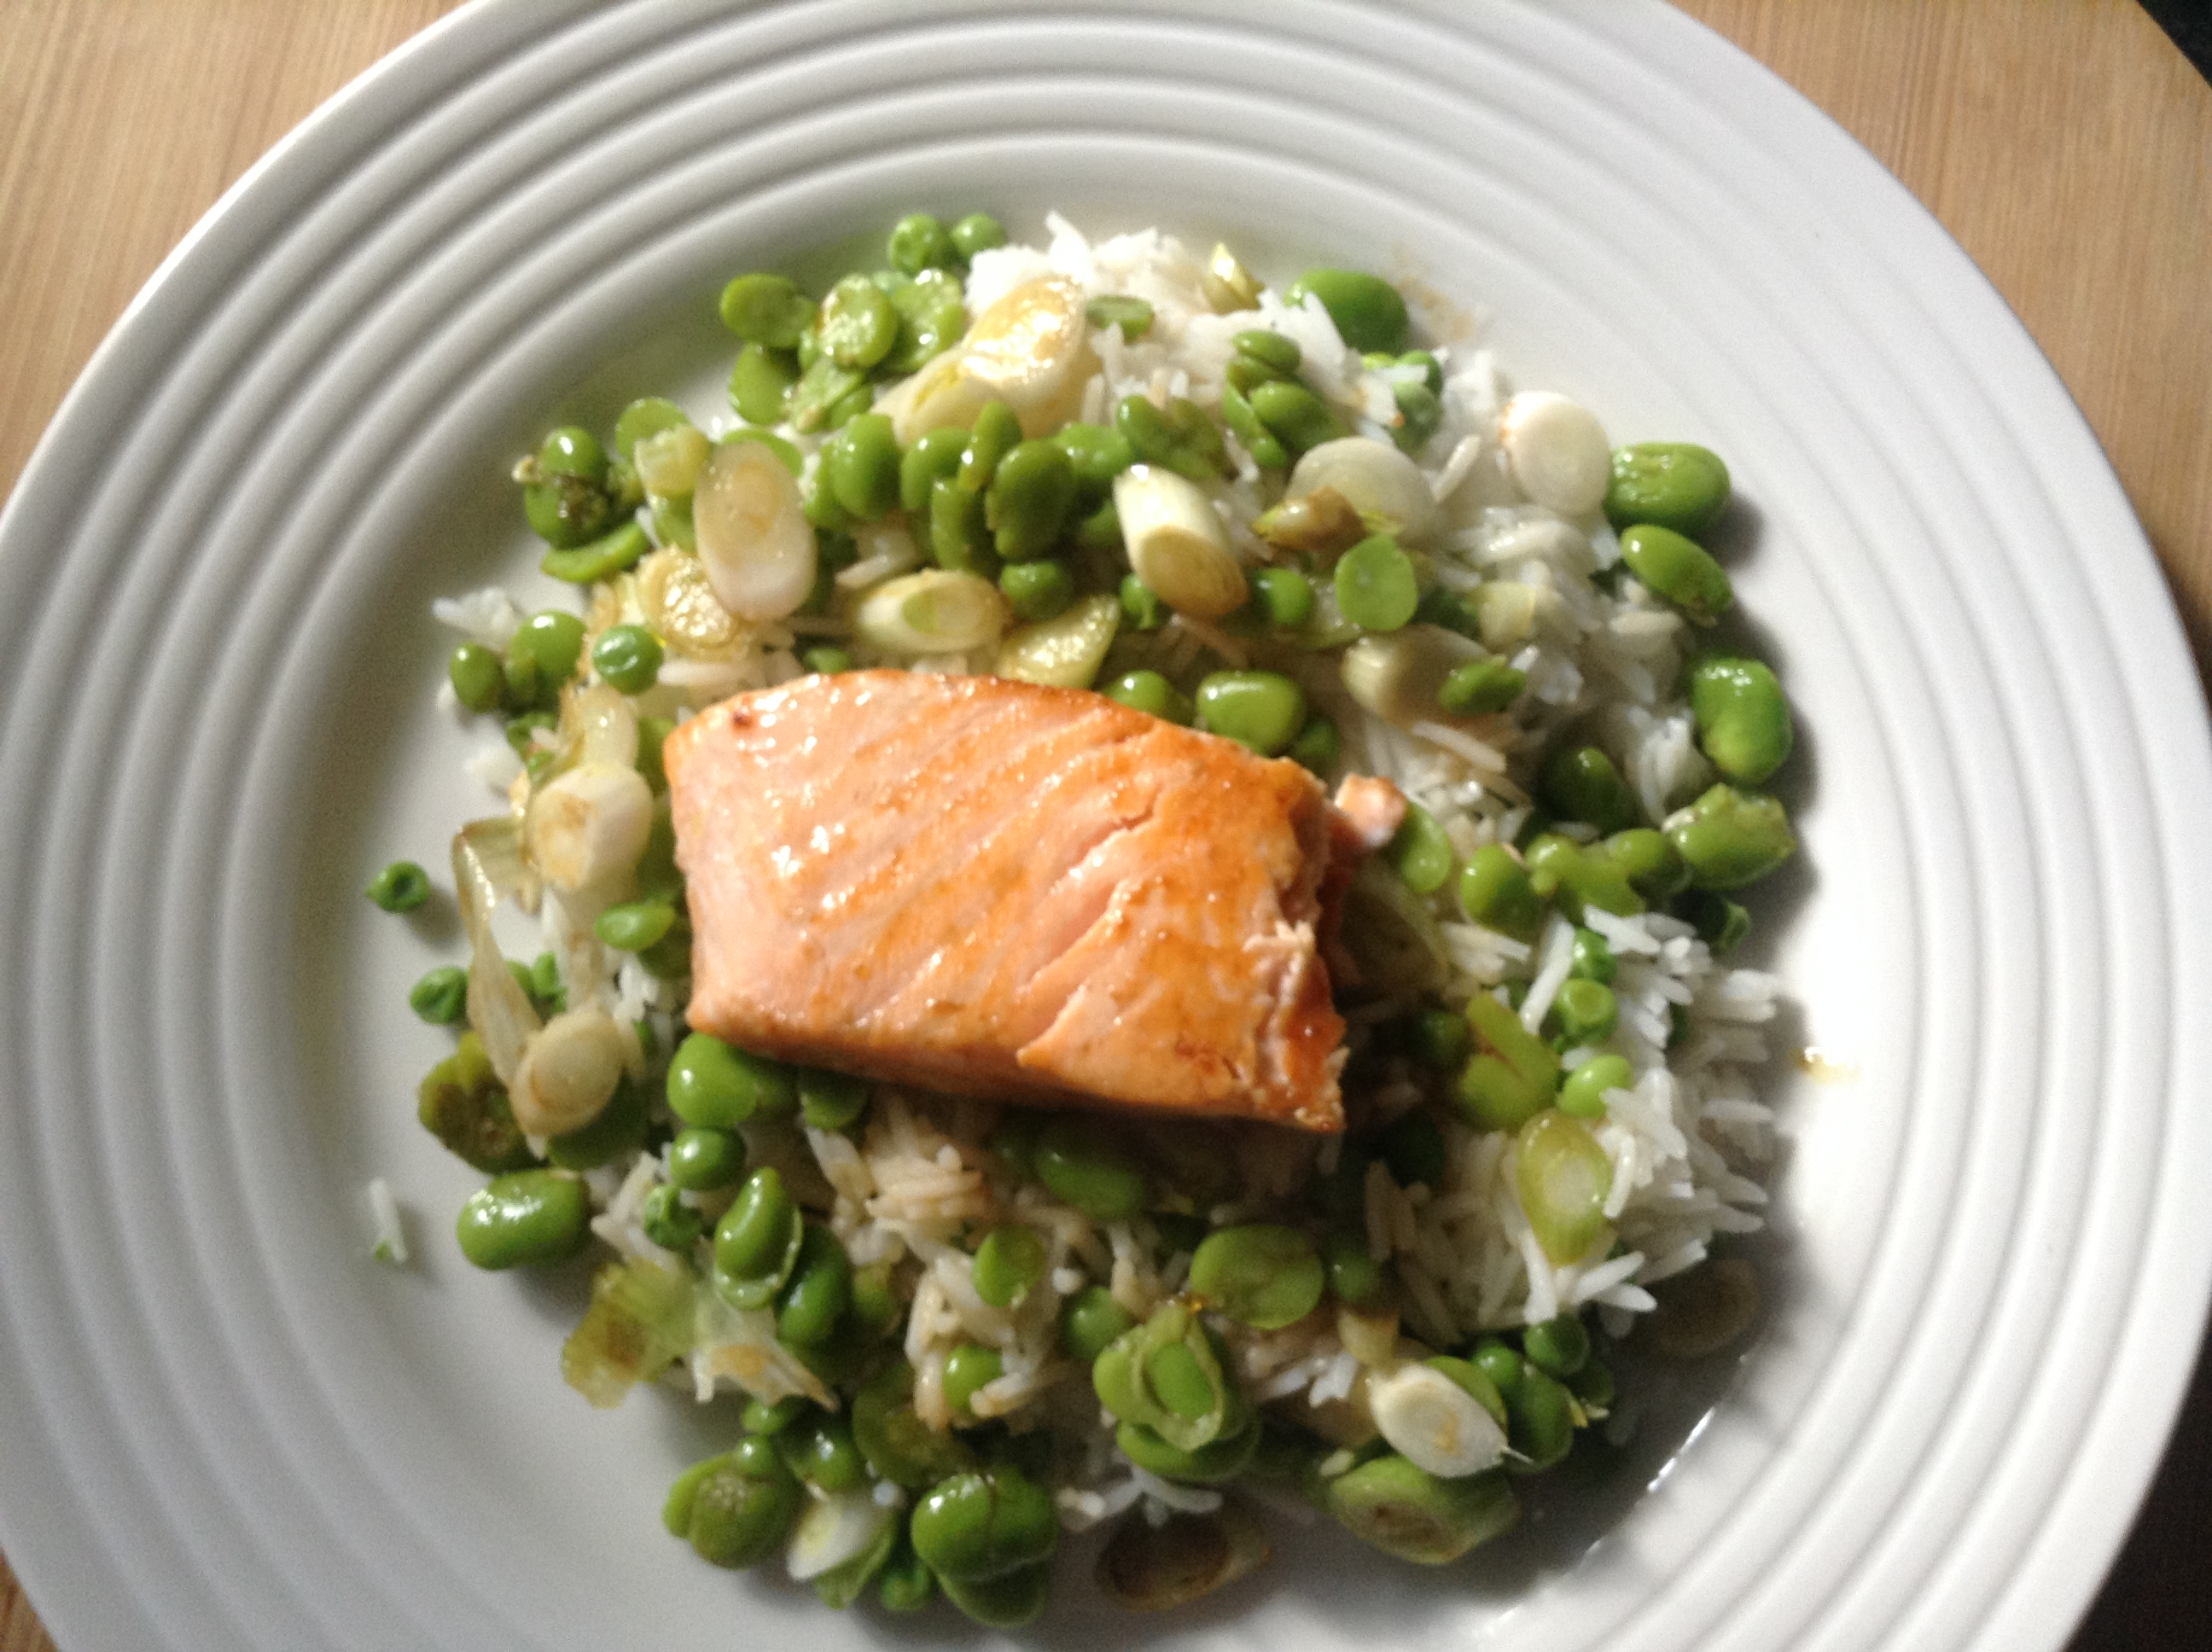 Easy salmon, broad beans, peas and tamari rice salad